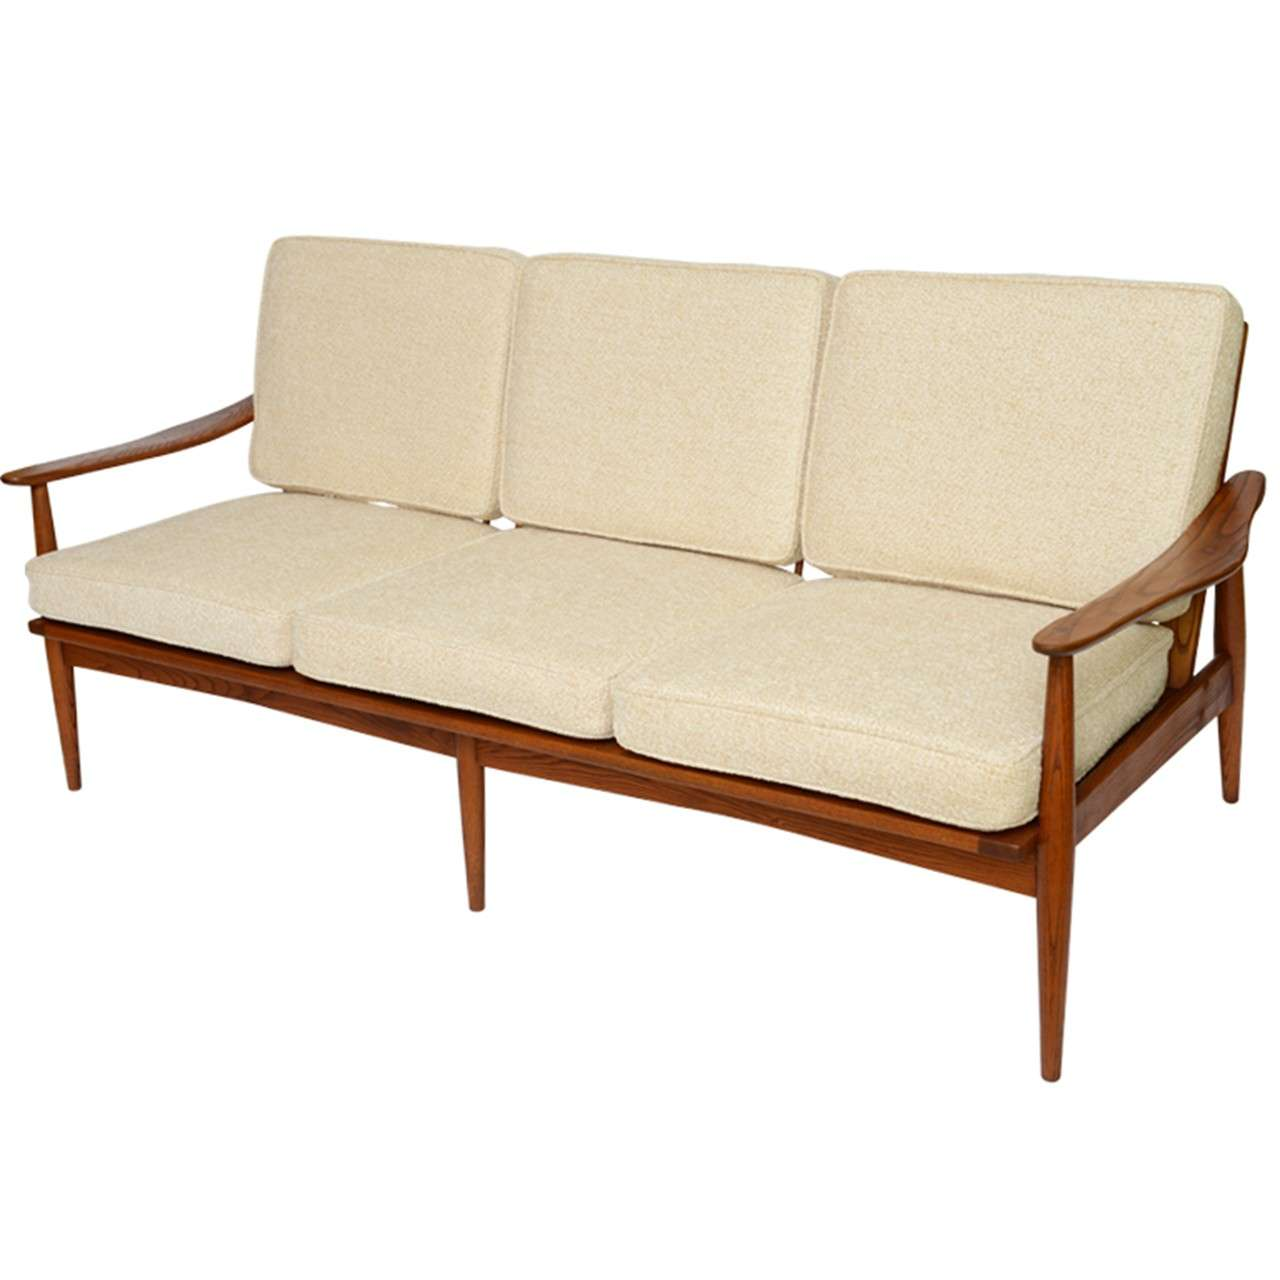 Danish 50s spindle back wide arm three seat sofa at 1stdibs for Wide couches